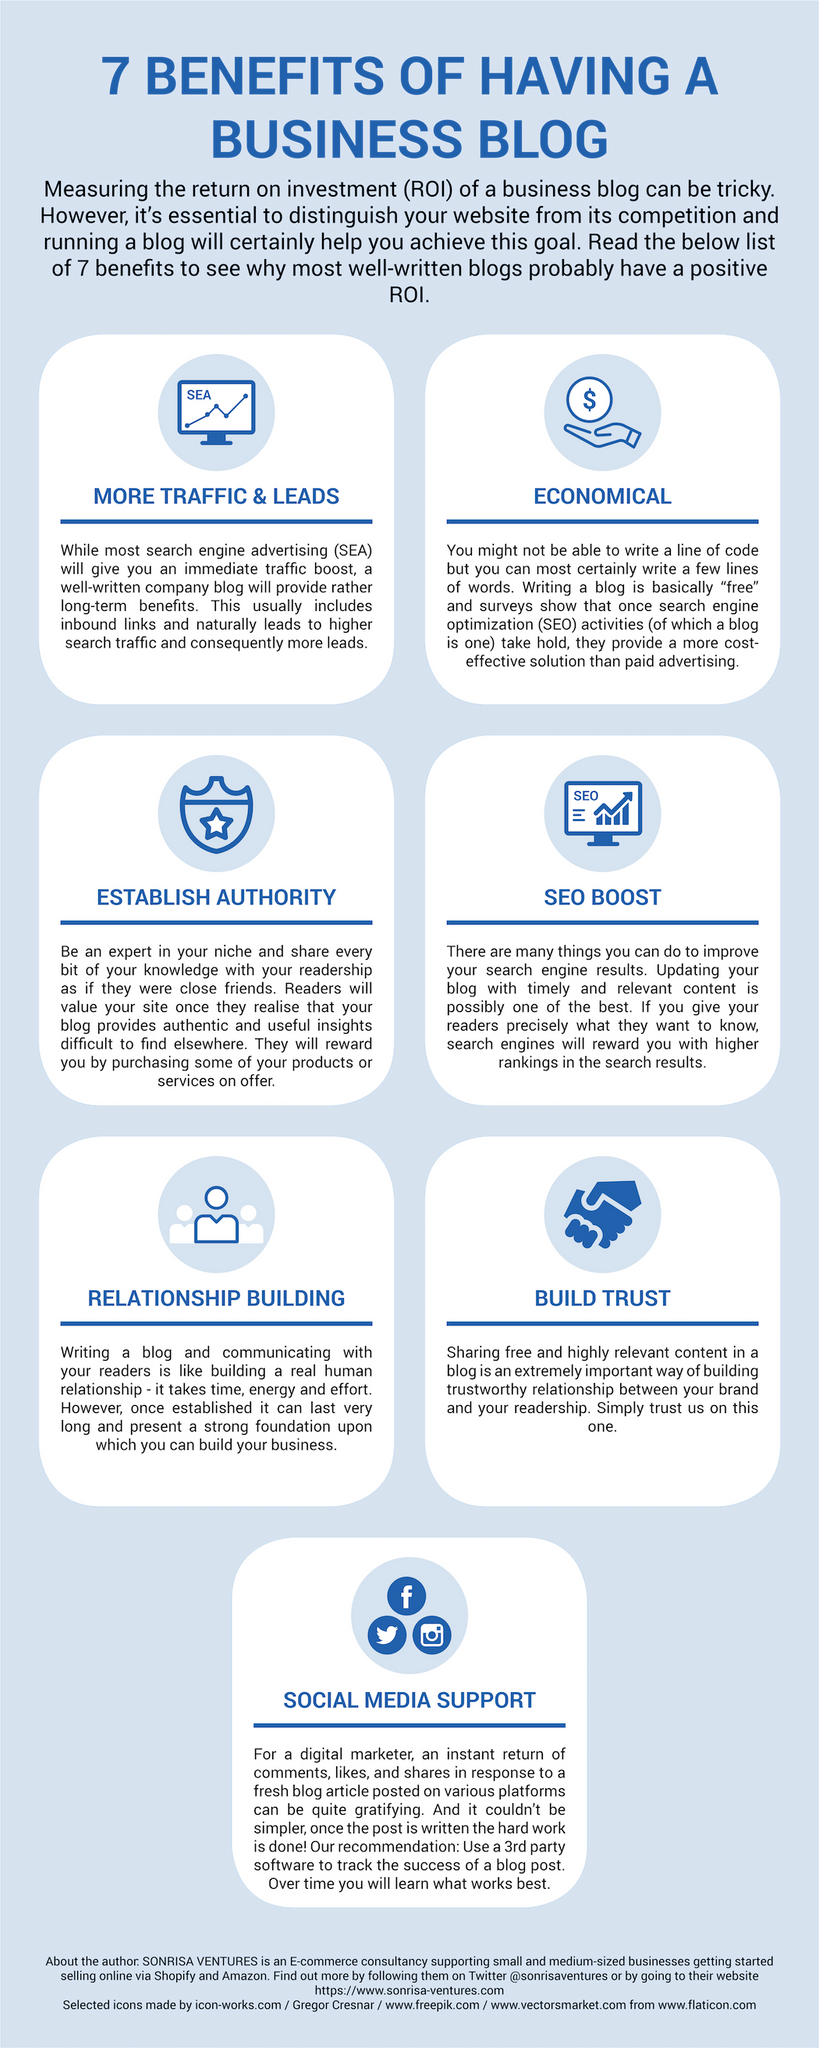 7 benefits of having a business blog.